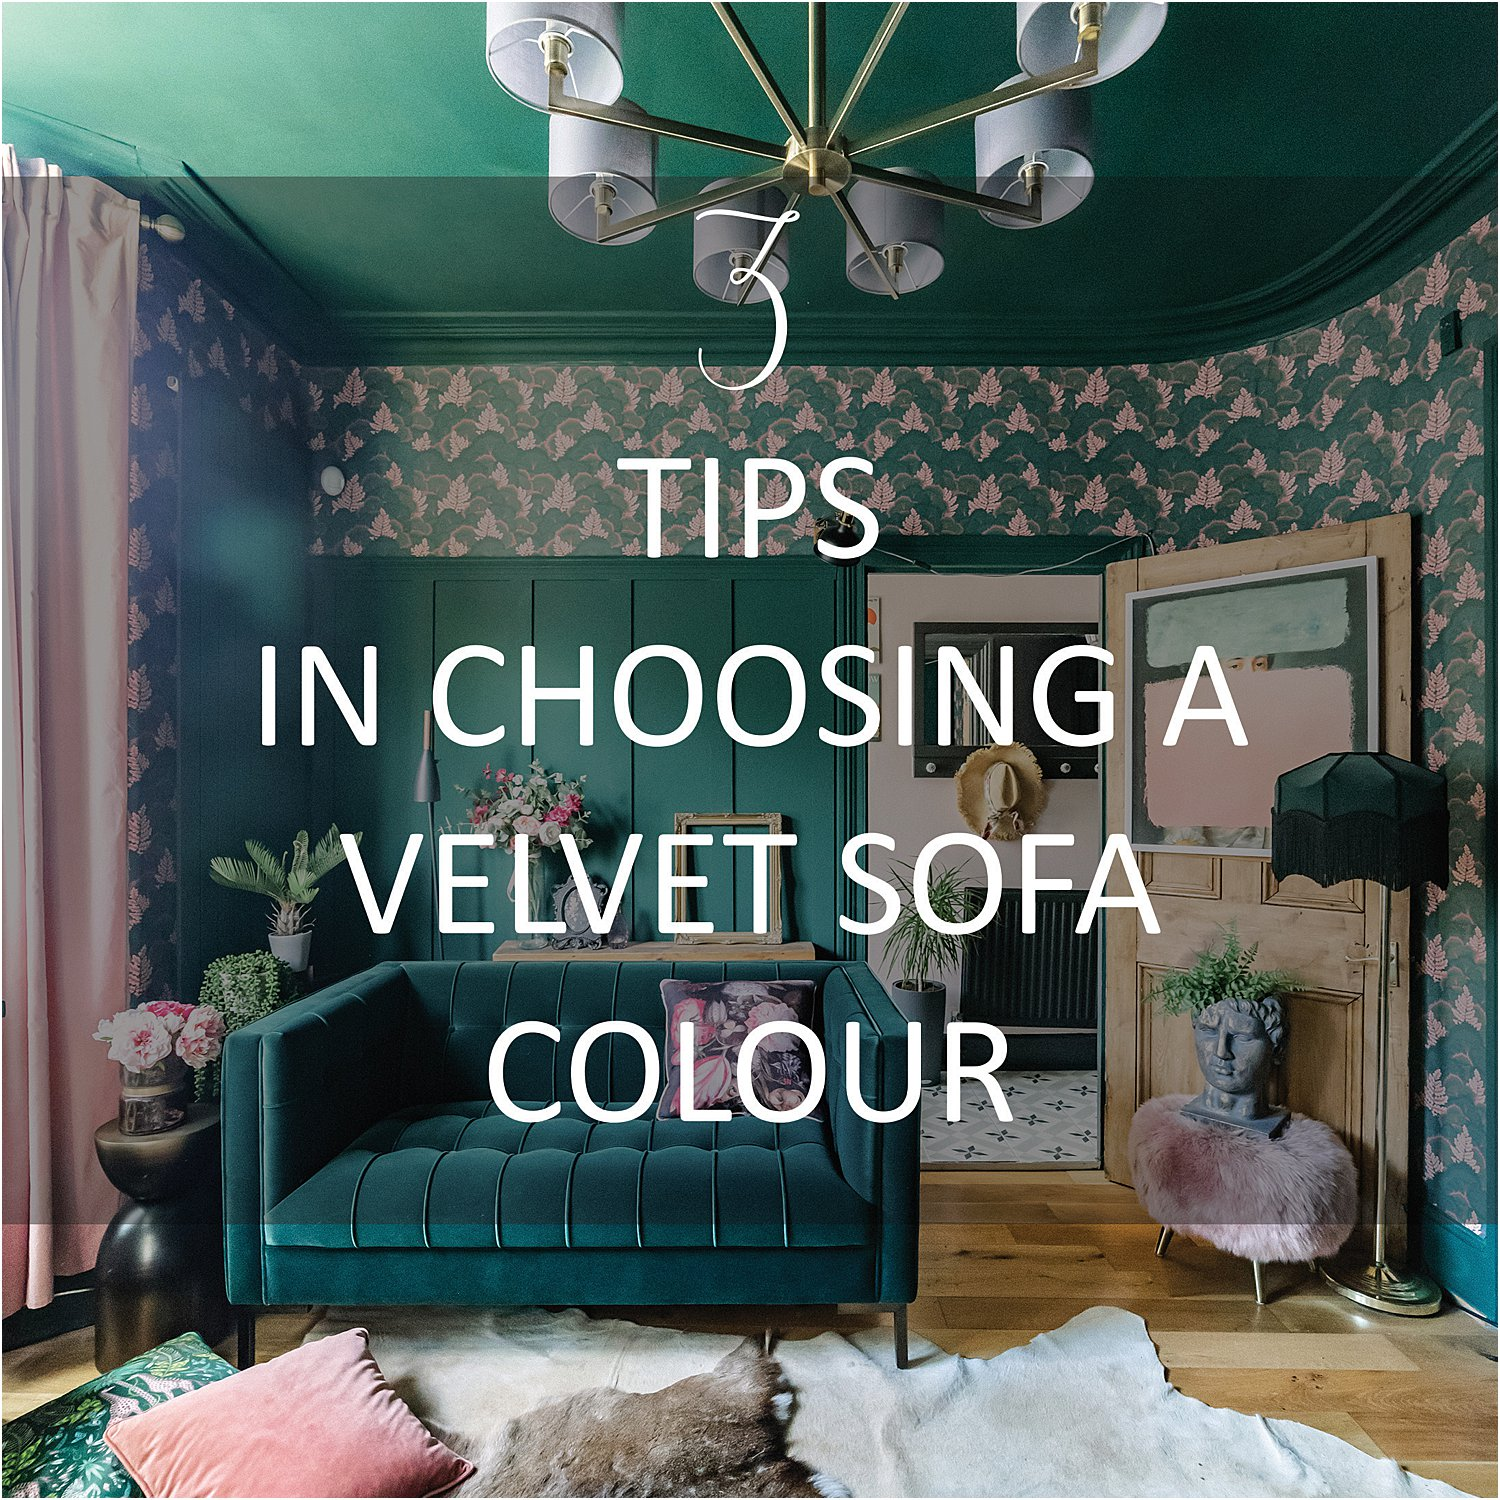 3-tips-in-choosing-a-velvet-sofa-colour